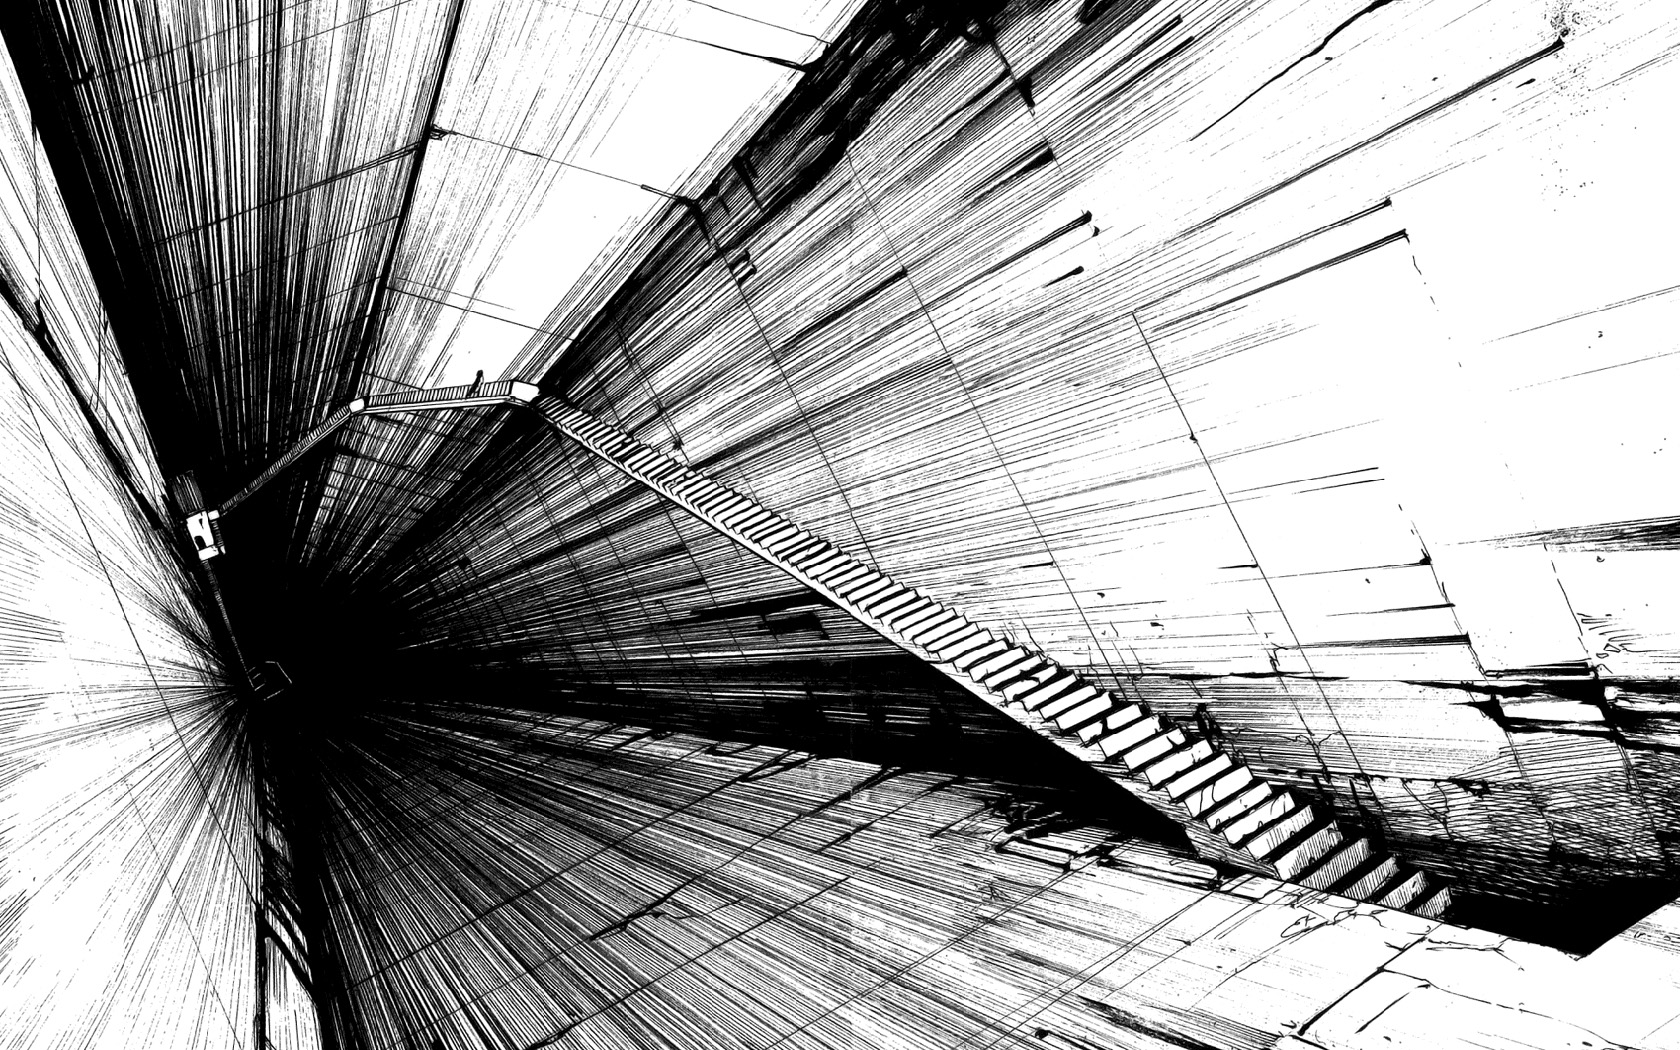 1680 x 1050 Wallpapers Wallpaper 392 abstract black whitejpg 889 1680x1050